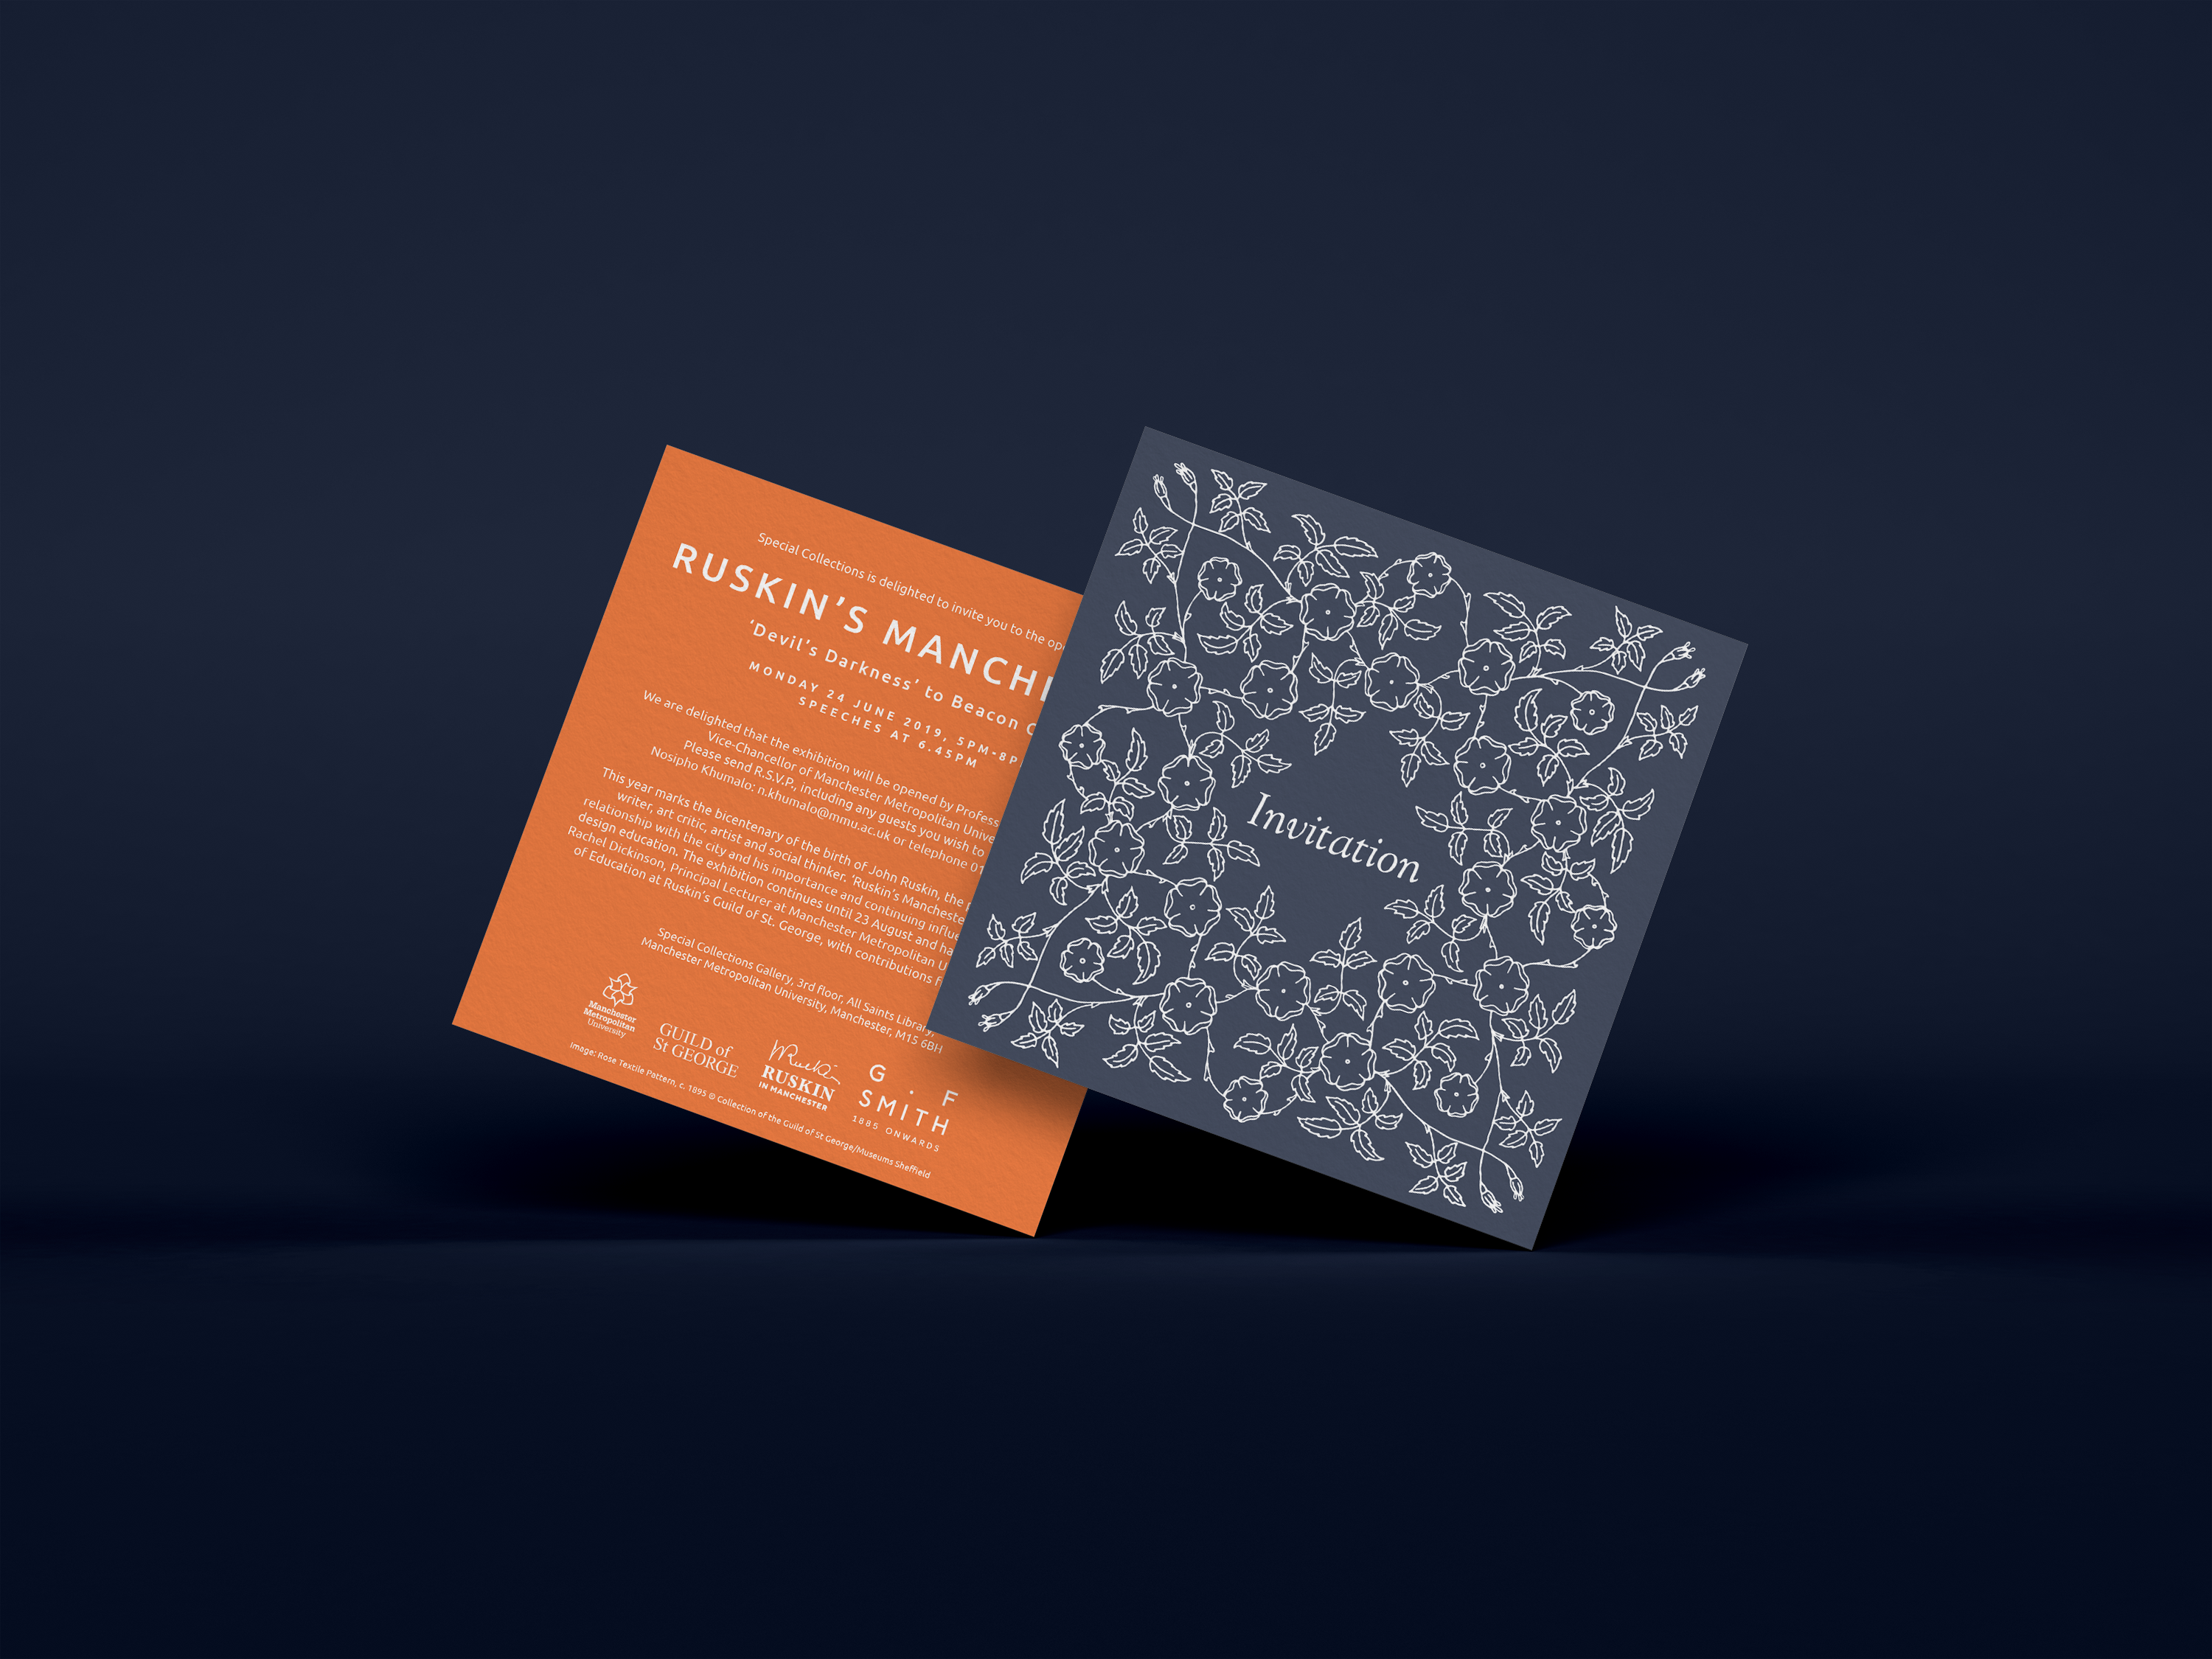 square invites, one side dark blue with floral pattern and word 'invitation' and the reverse orange with text about Ruskins Manchester exhibition